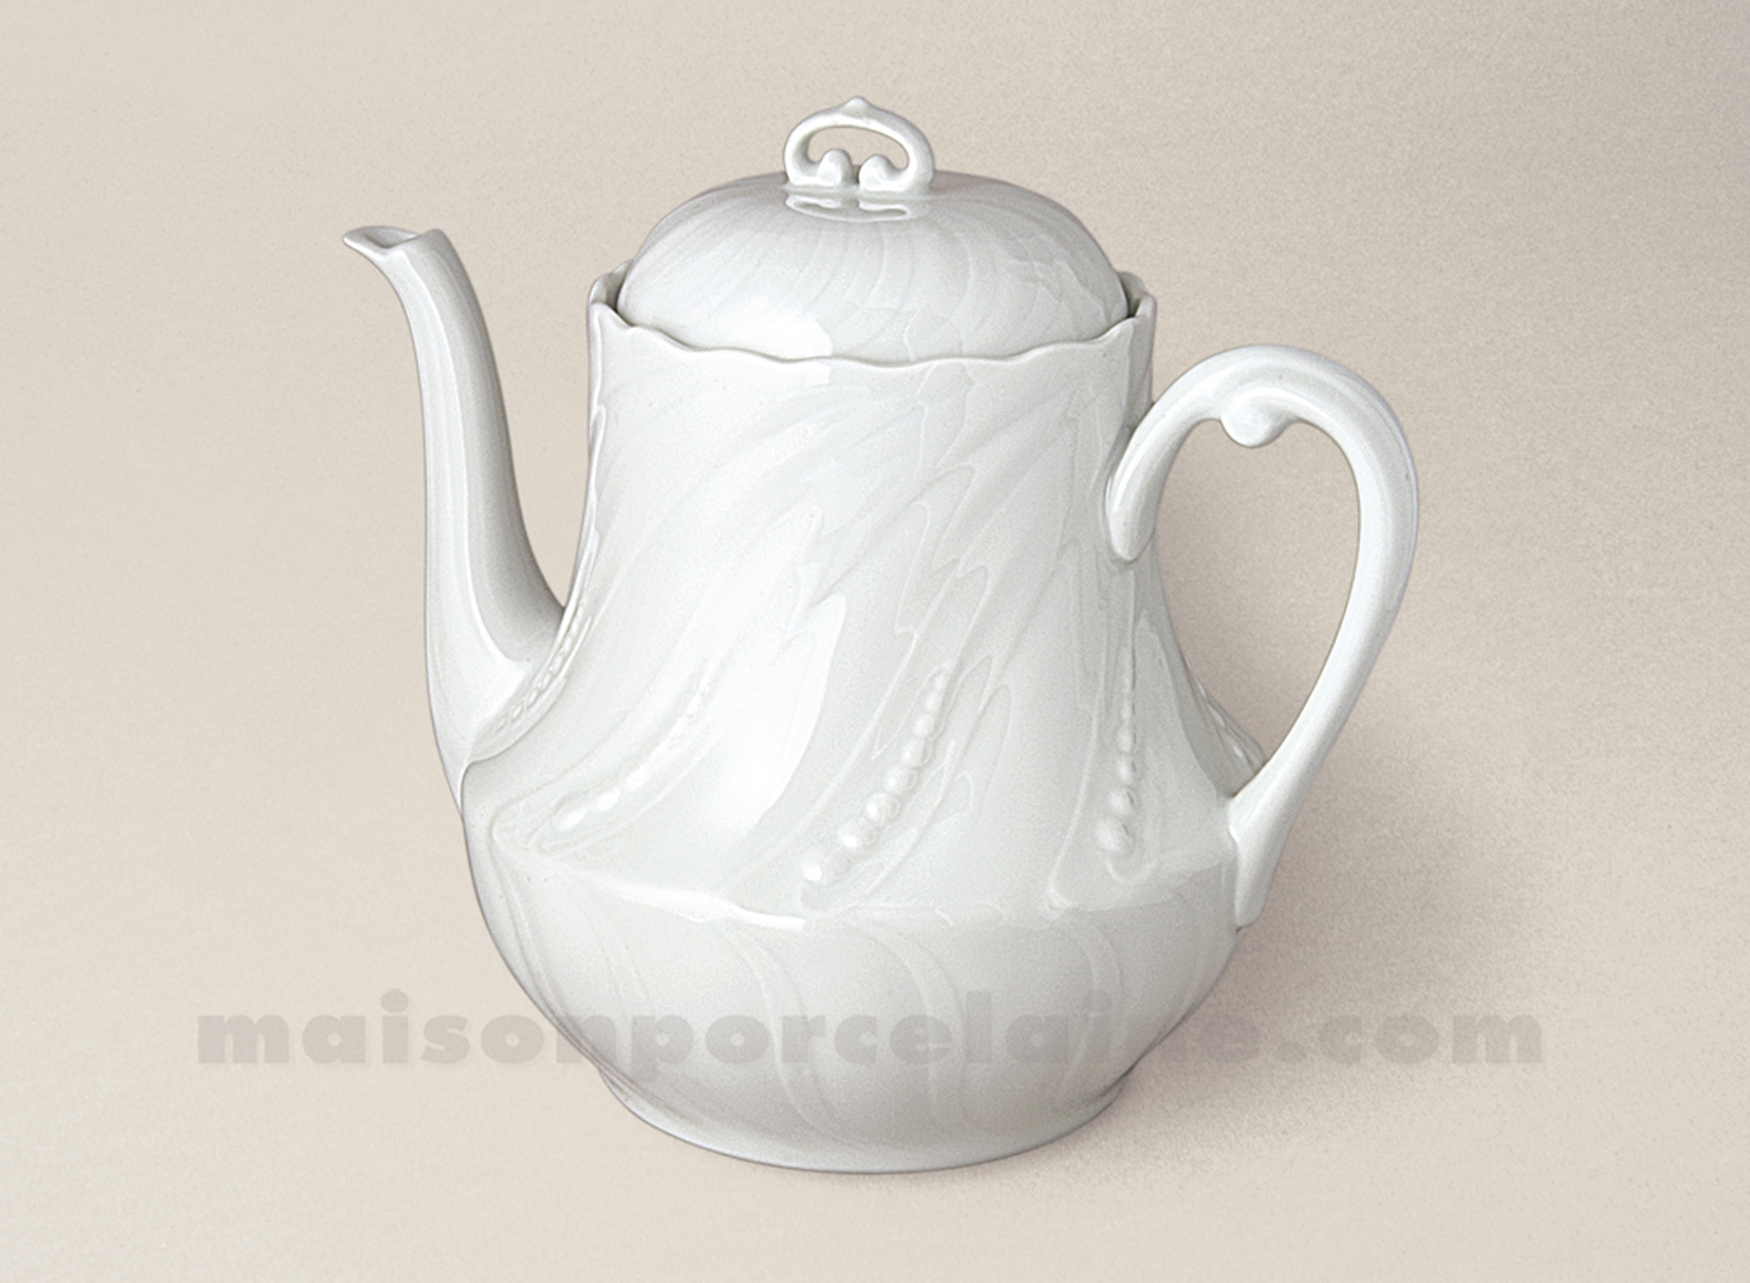 Theiere ocean limoges porcelaine blanche gm 1 4l maison for Maison de la porcelaine